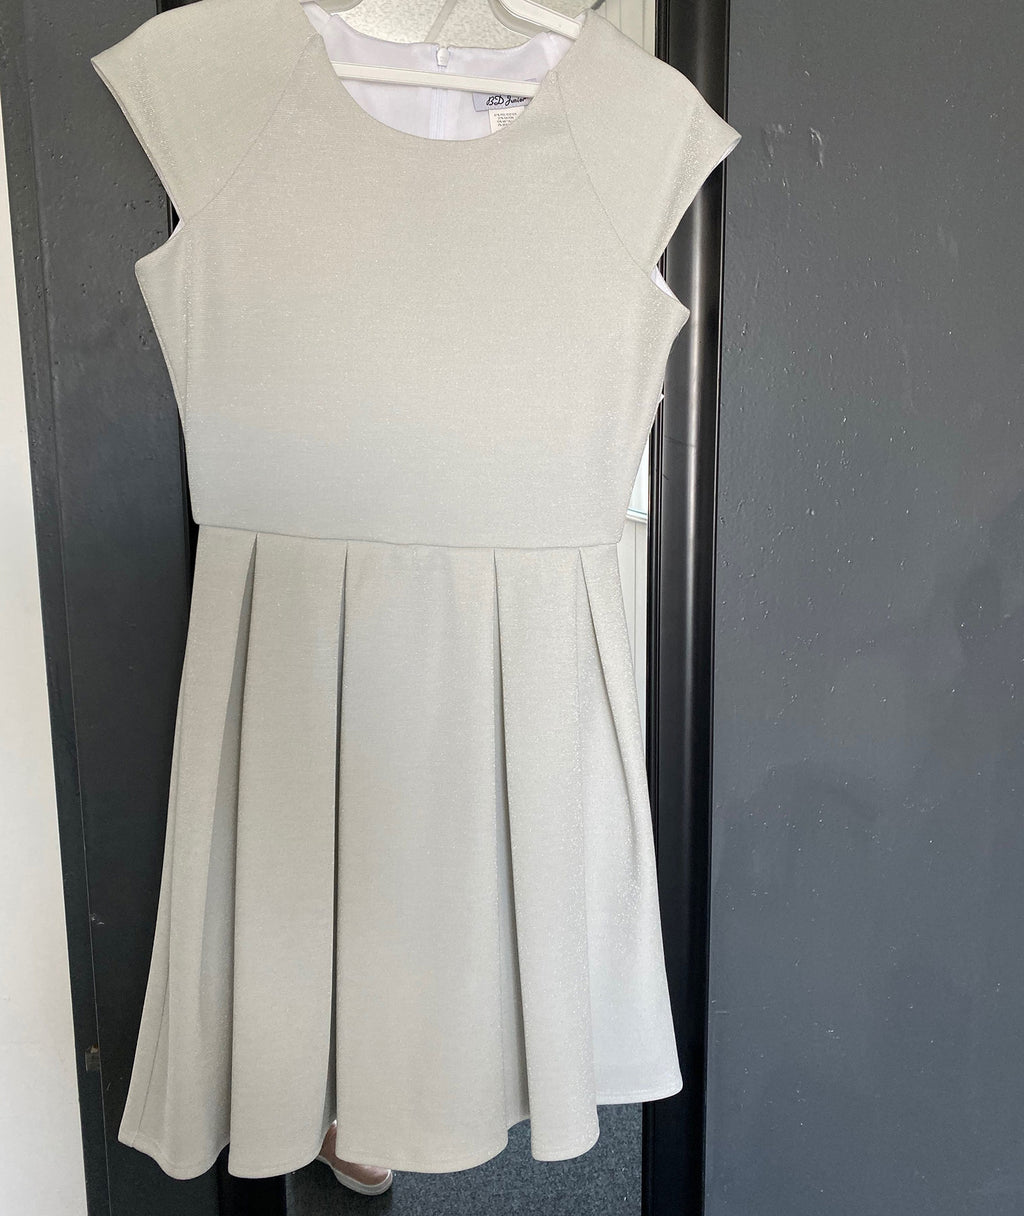 By Debra Girls White Silver Cap Sleeve Dress